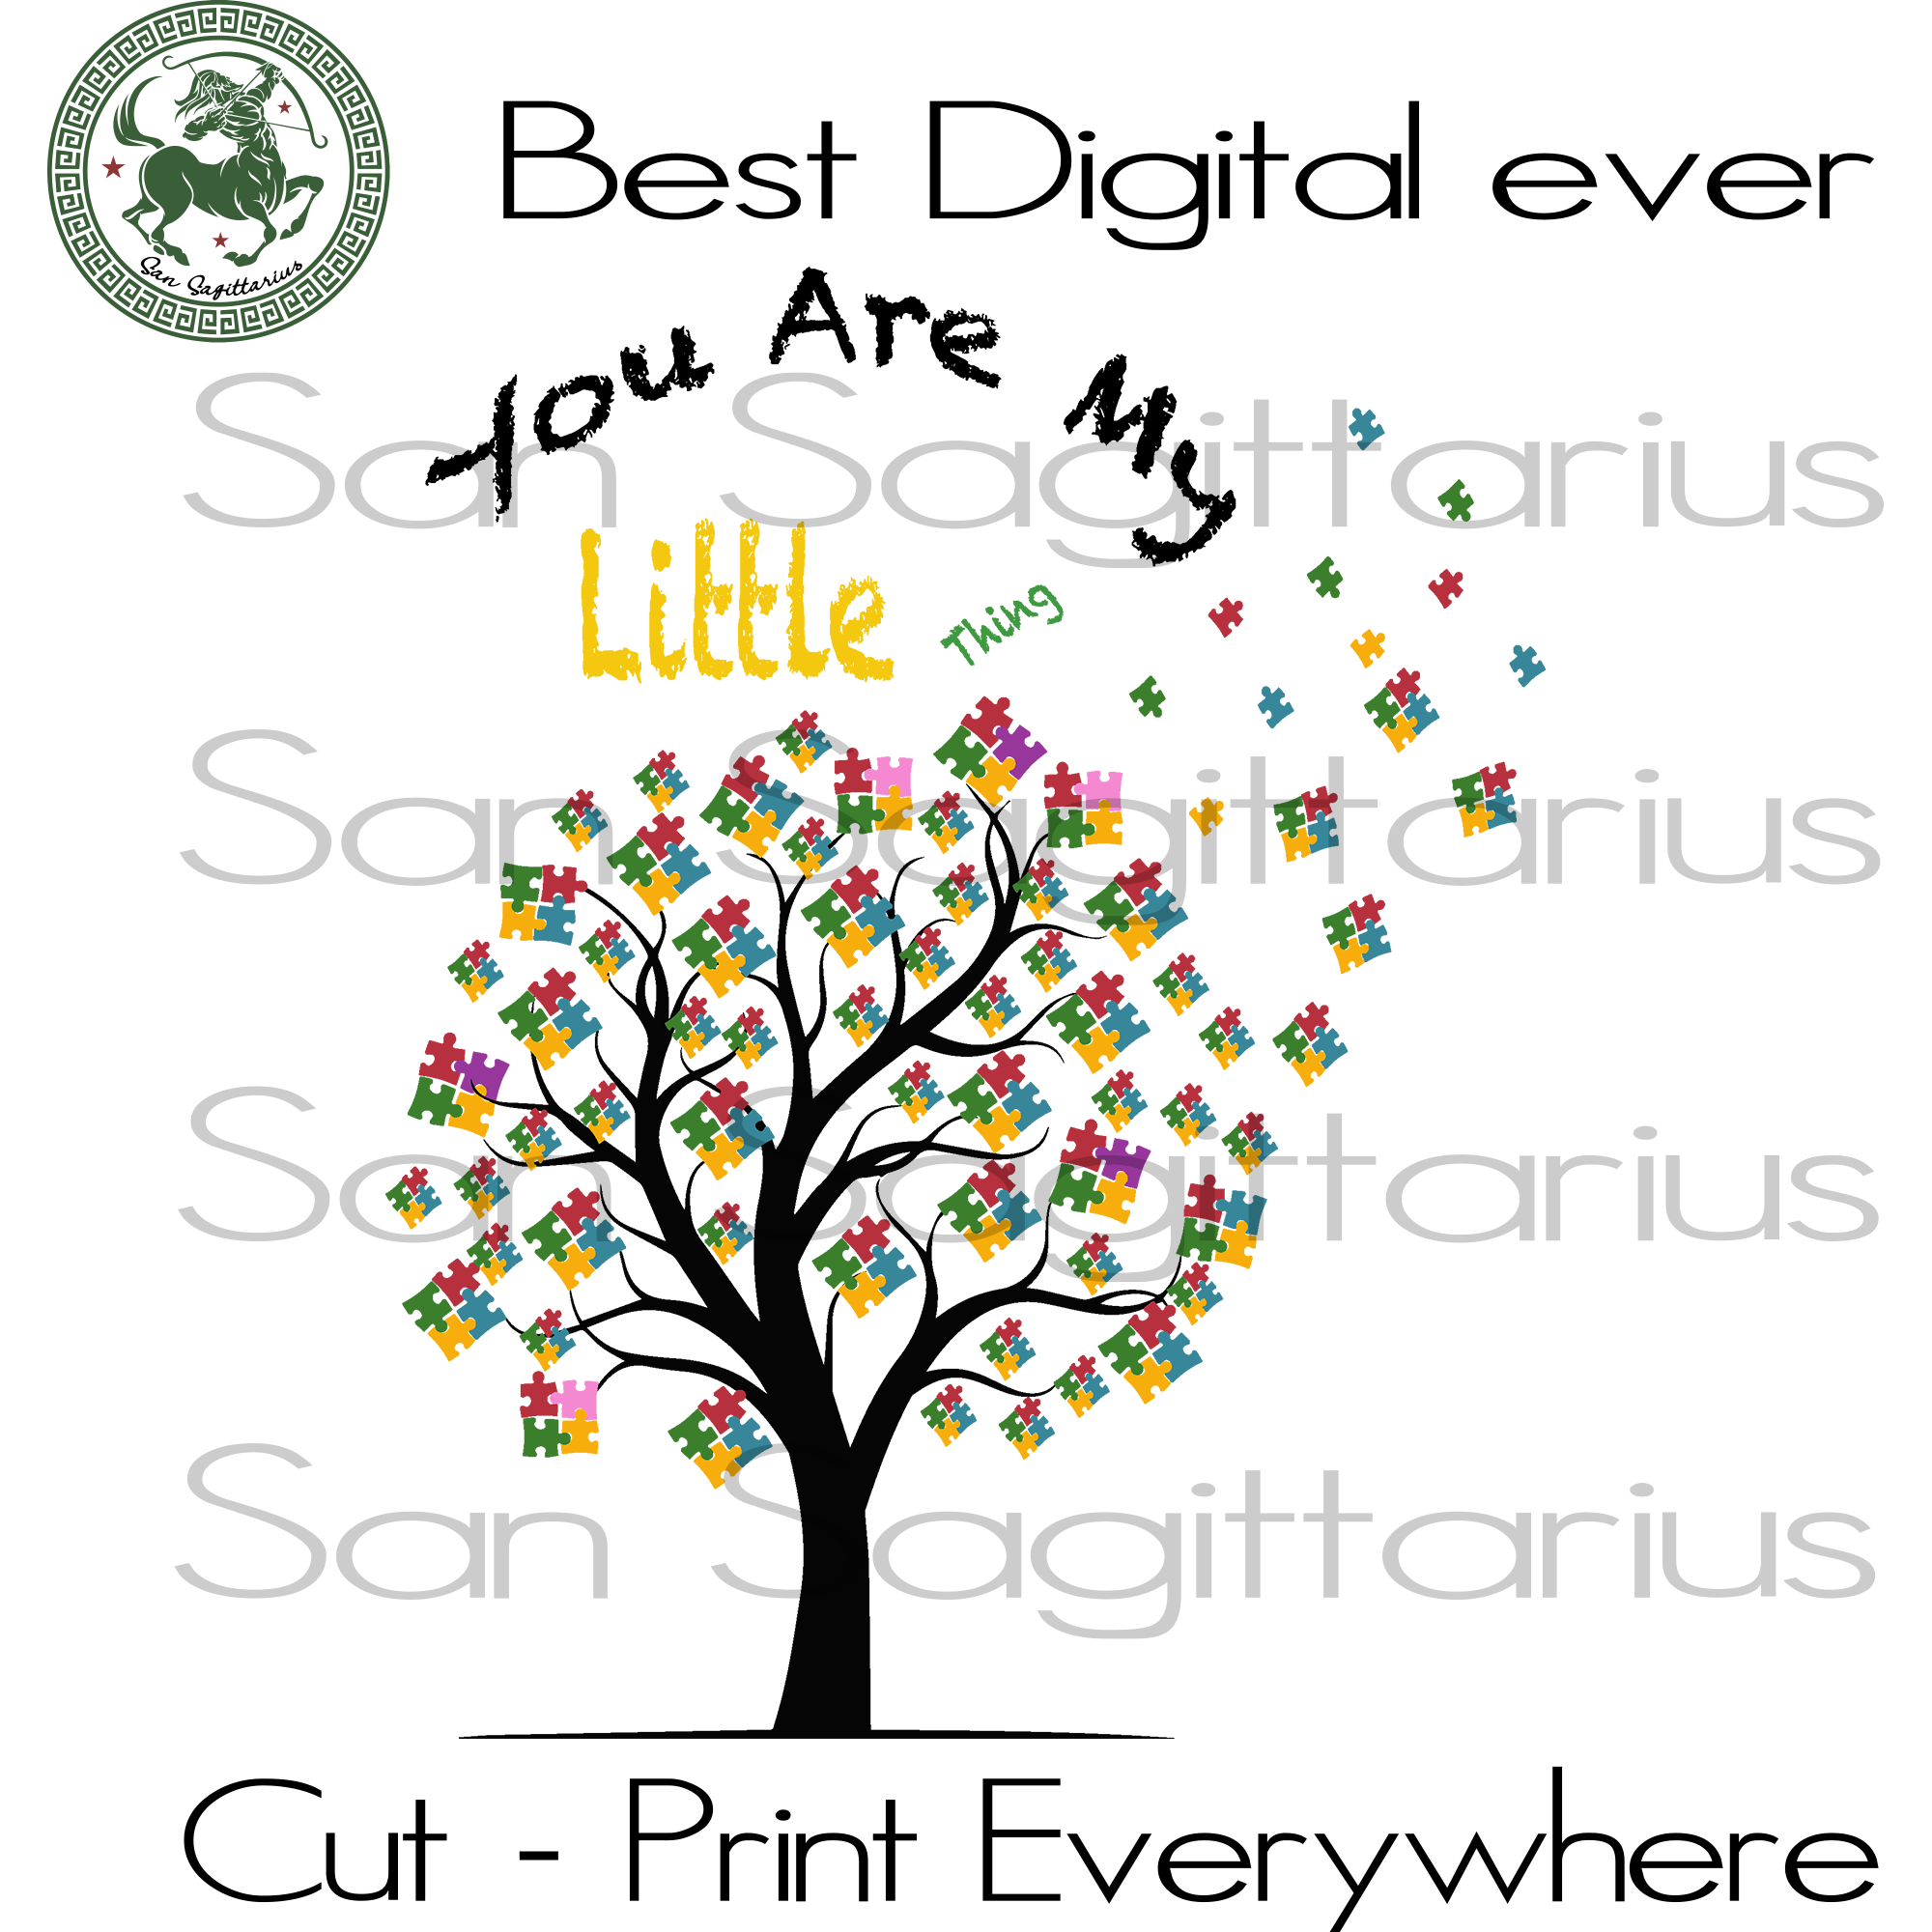 You Are My Little Thing, Autism Gift, Autism Svg, Autism Awareness, Autism Son, Autism Mom SVG Files For Cricut Silhouette Instant Download | San Sagittarius